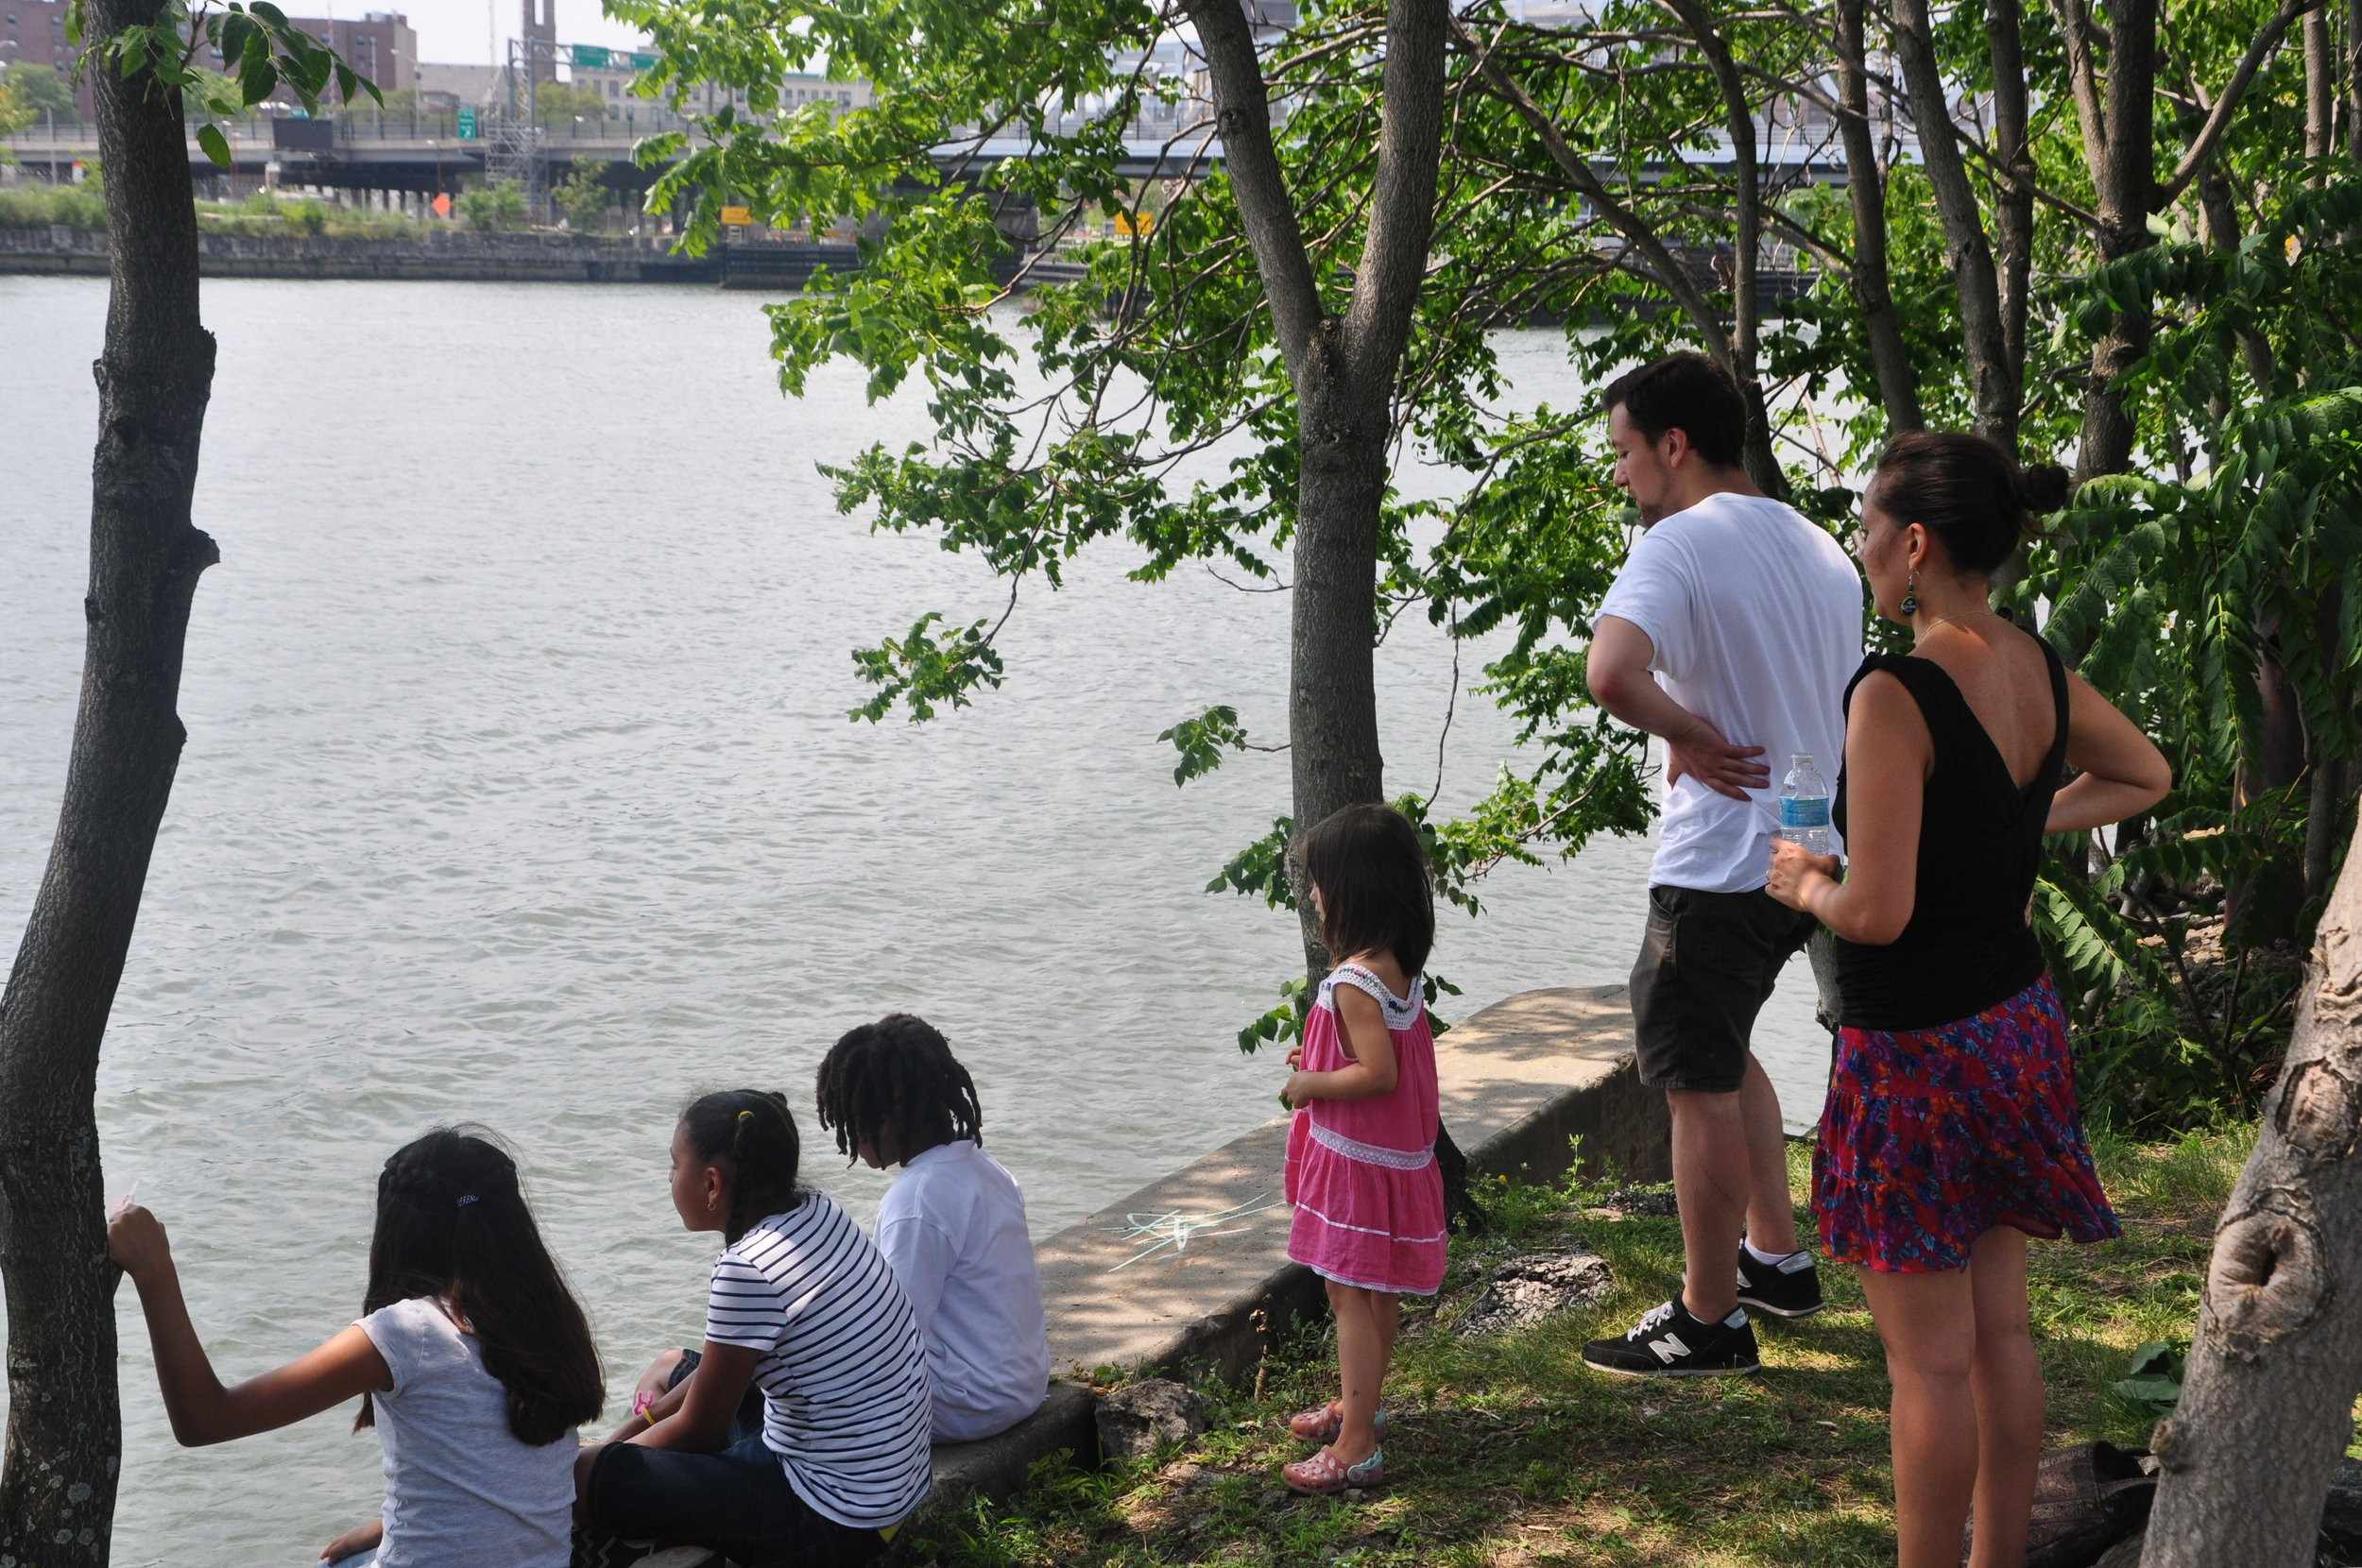 By Samali Bikangaga. Residents celebrate City of Water Day on the banks of the Harlem River in Port Morris waterfront on July 16.